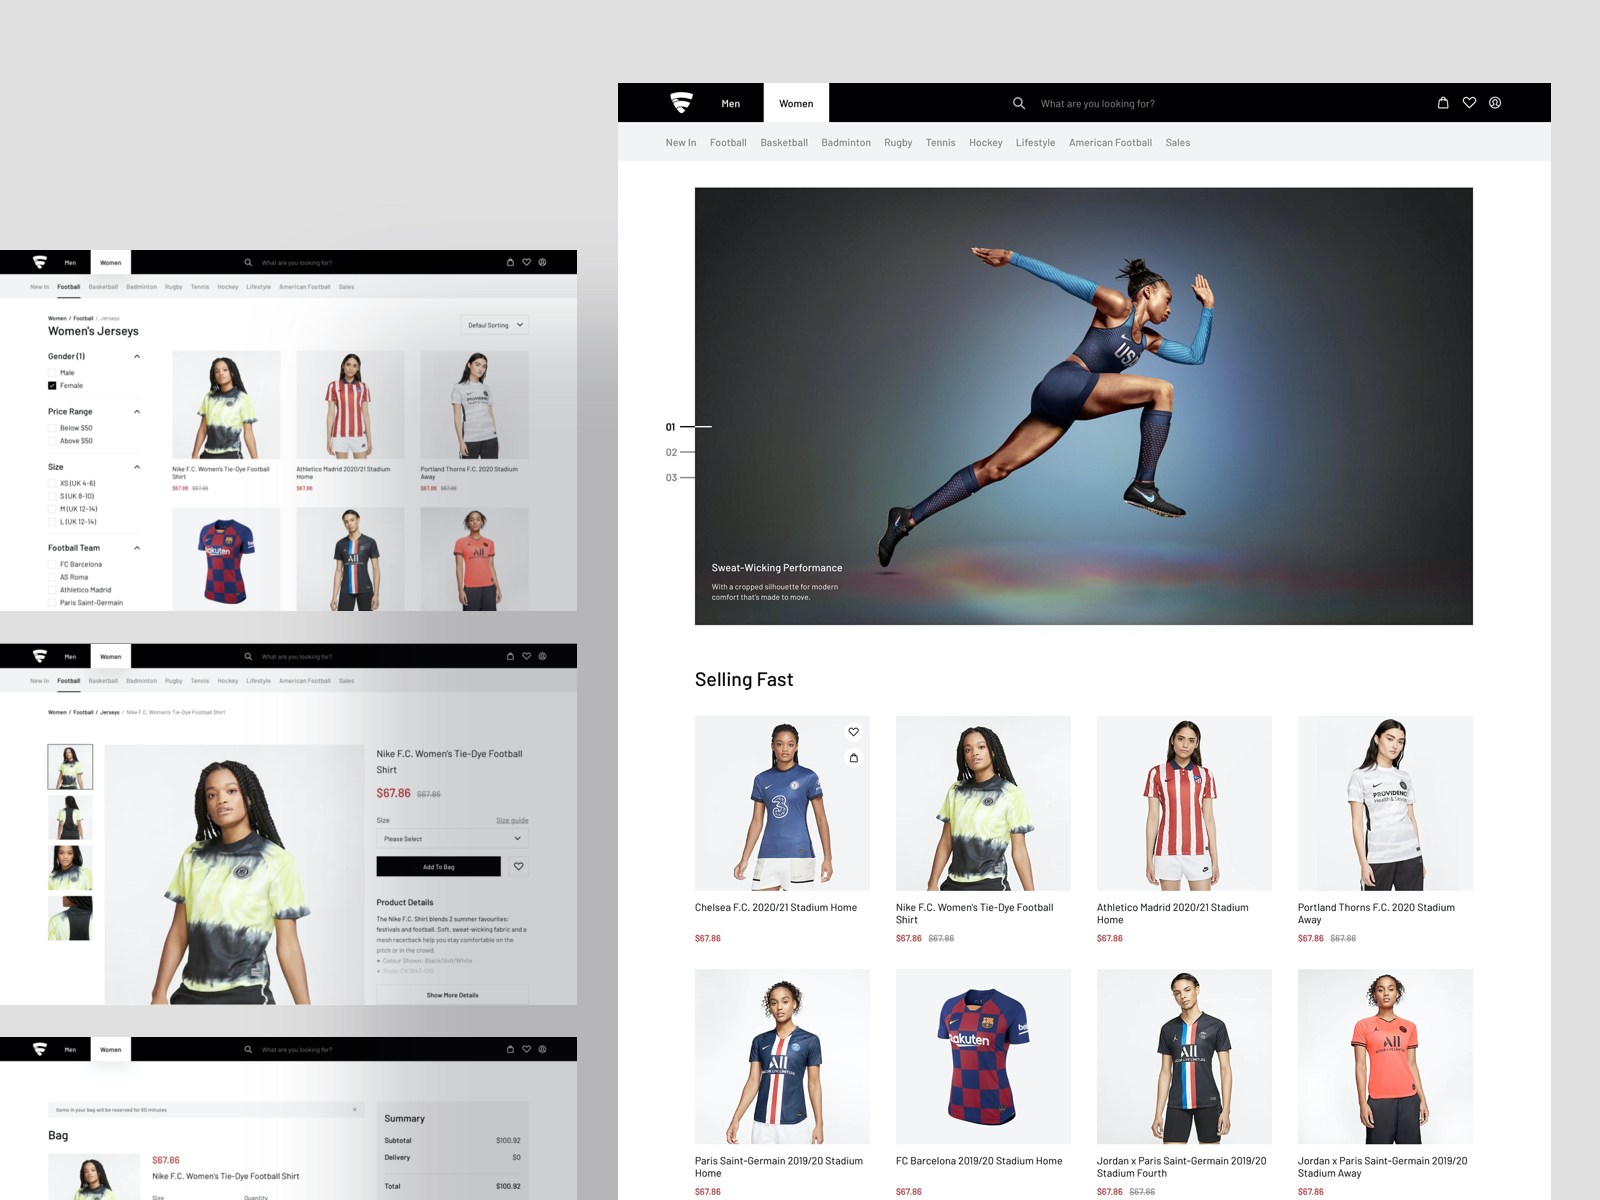 jersey shop web ui kit showing cart, checkout, shop, page and various models in nike jerseys